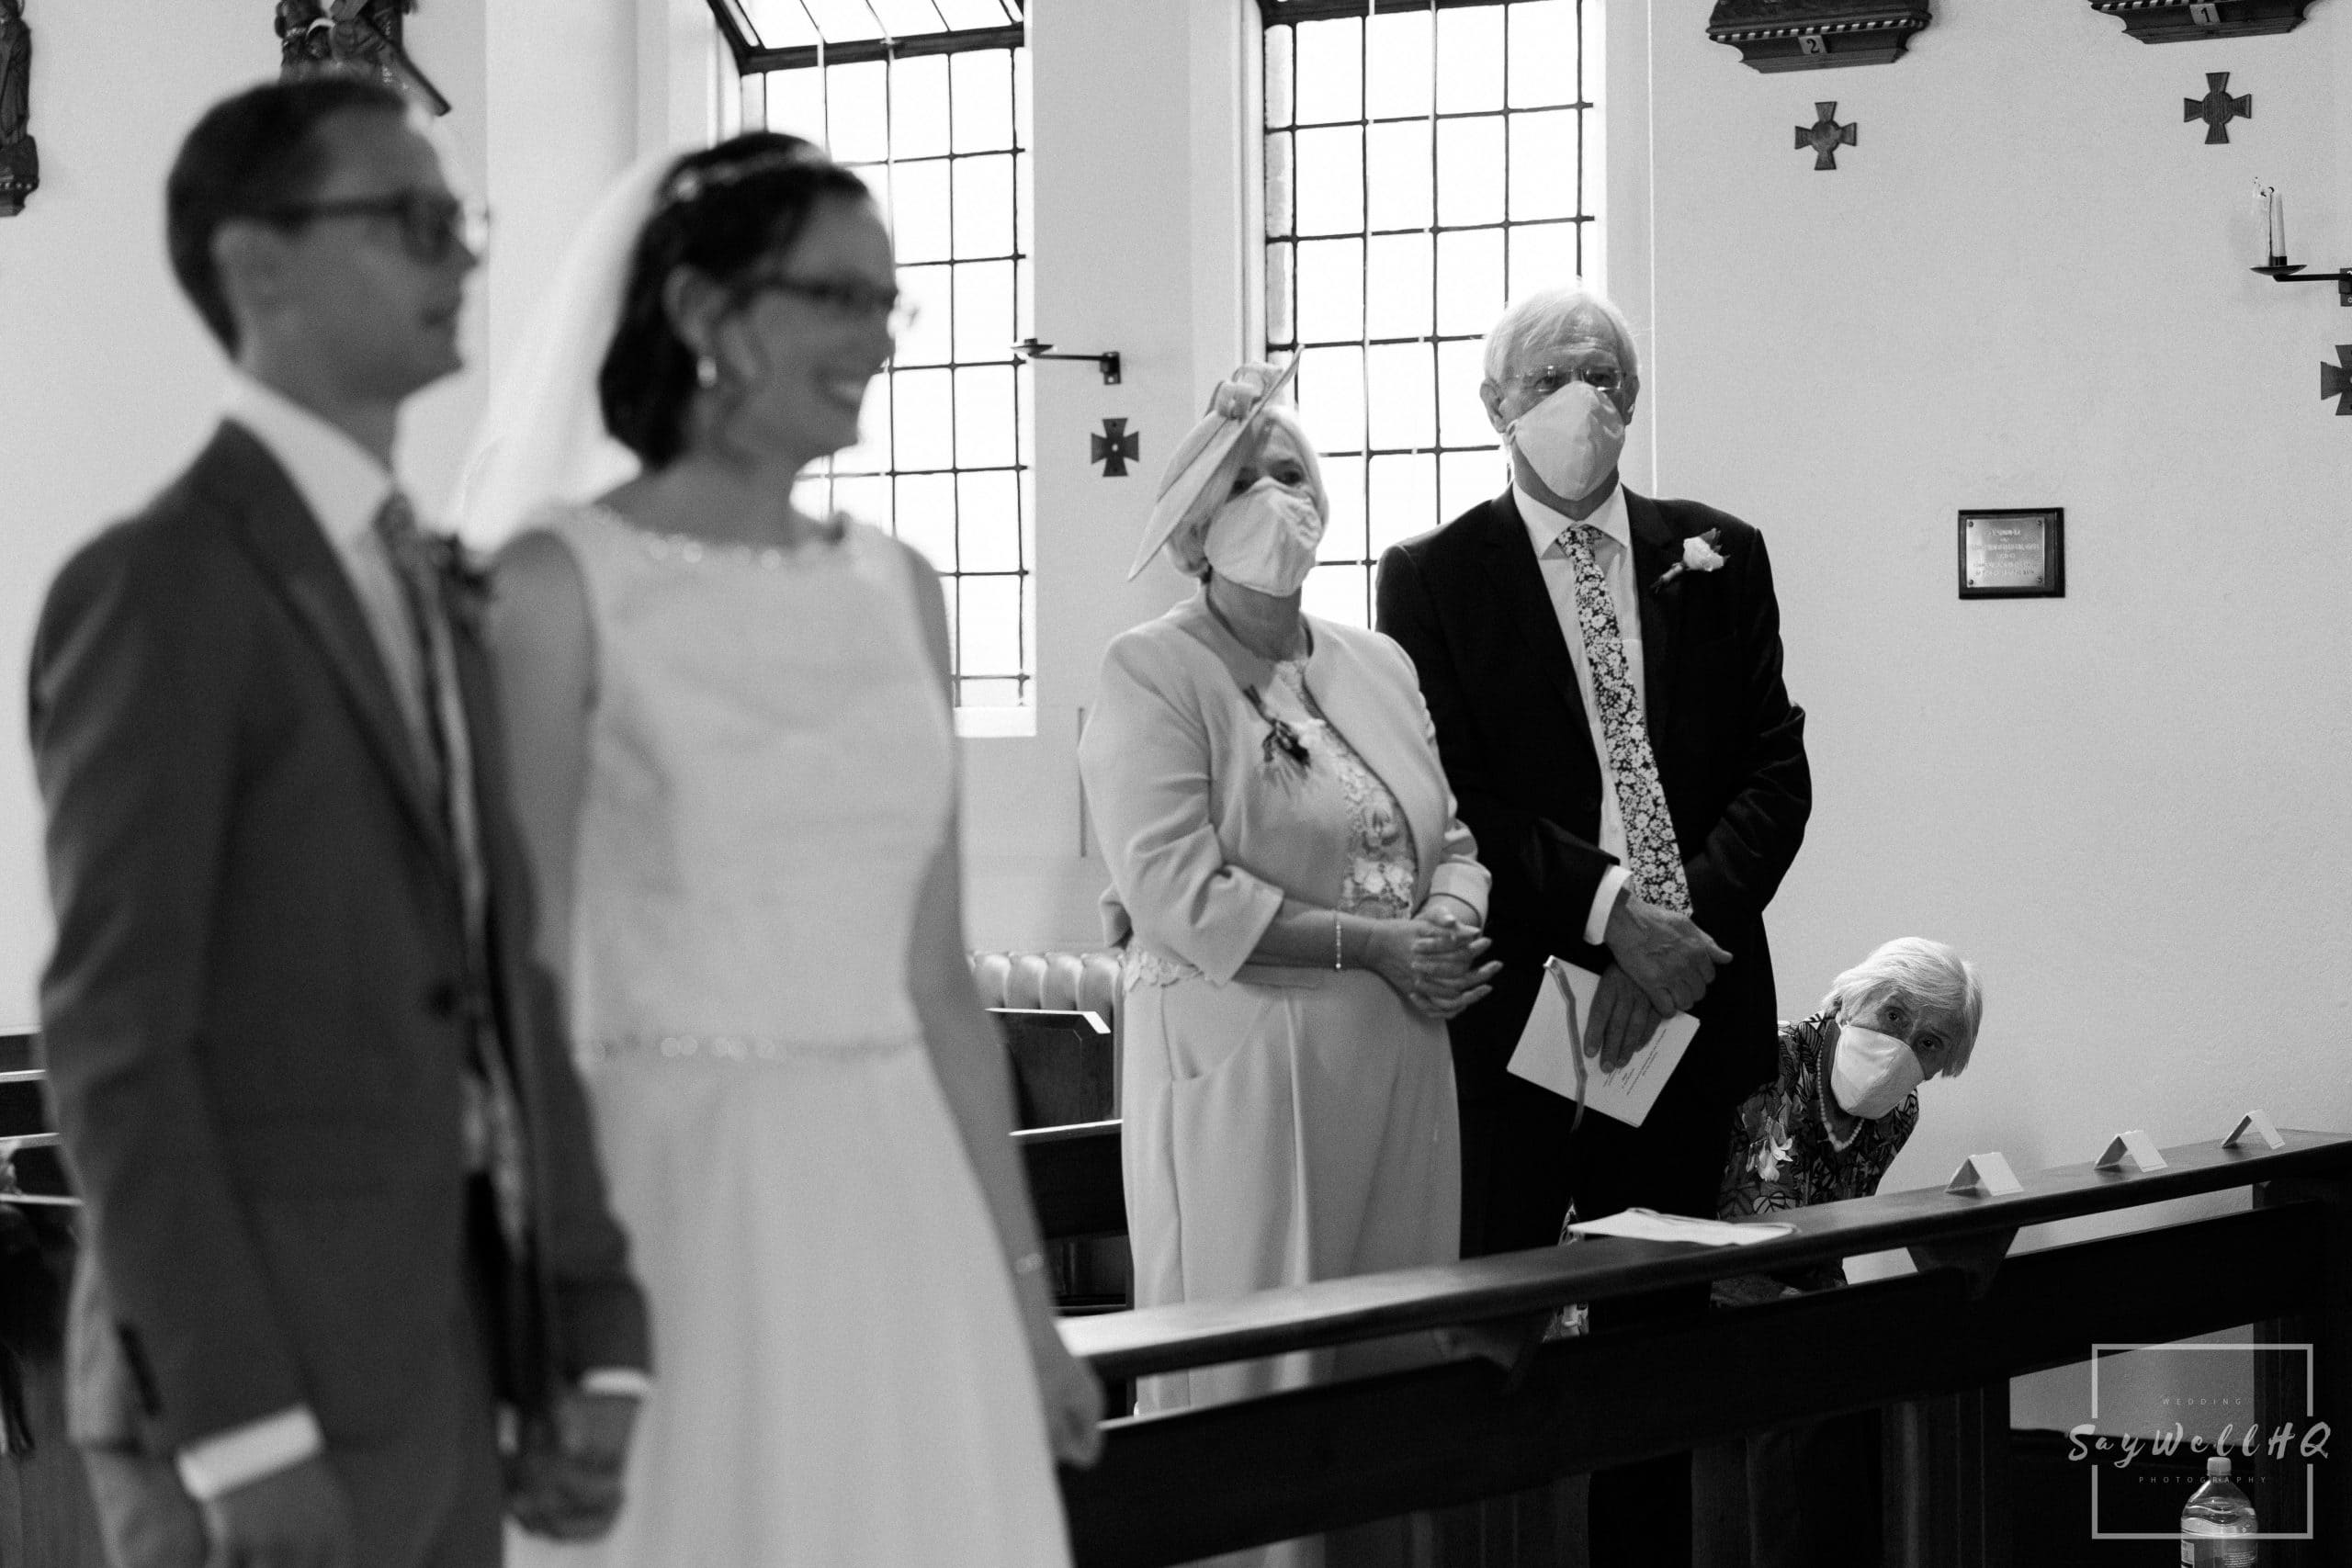 Grandma looking at her grand daughter getting married whilst wearing a facemask during the wedding ceremony